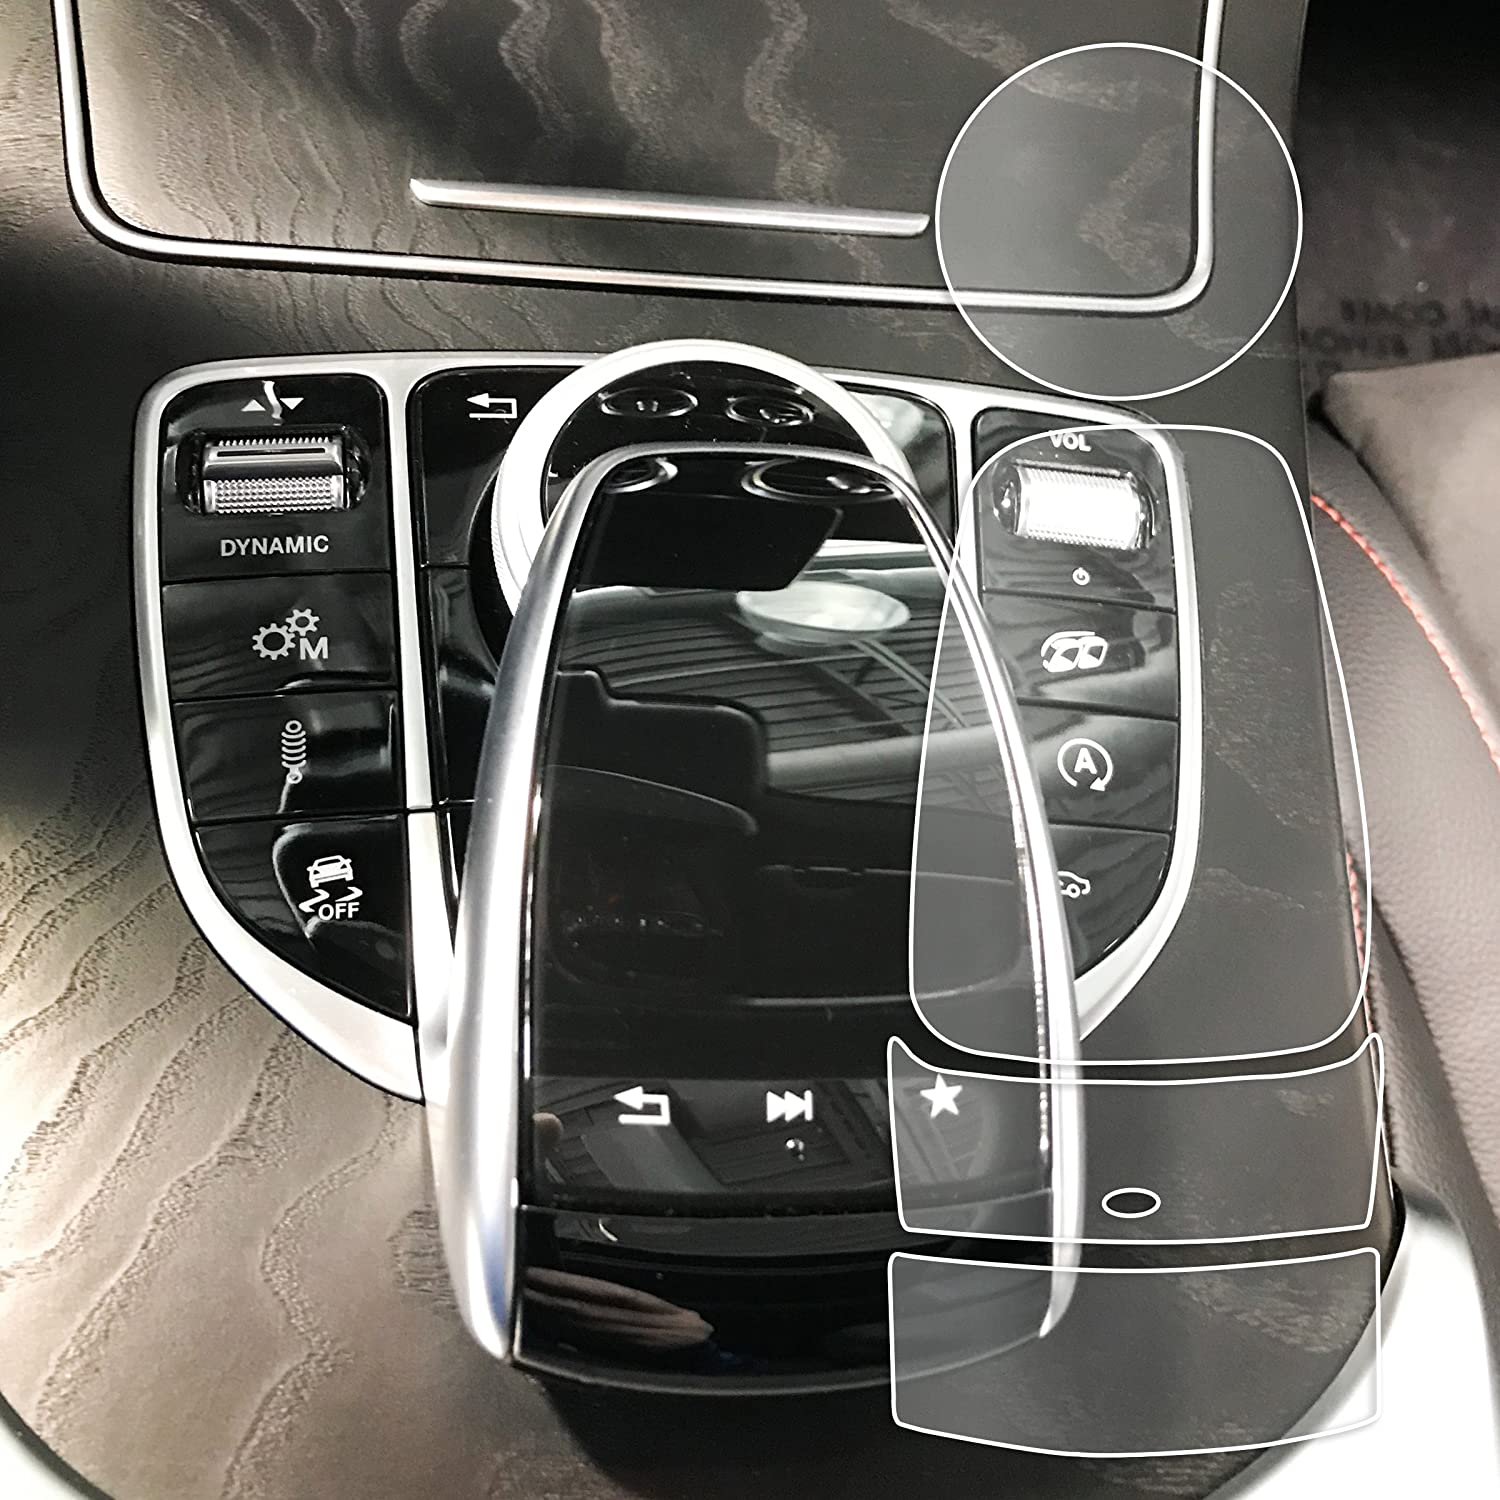 Red Hound Auto 2 fits Touchpad Controller with Scroll Wheel Compatible with Mercedes-Benz COMAND C/GLC/GLE/S Class Sedans Coupes and SUVS Screen Saver 4pc Each High Clarity Pad Protector